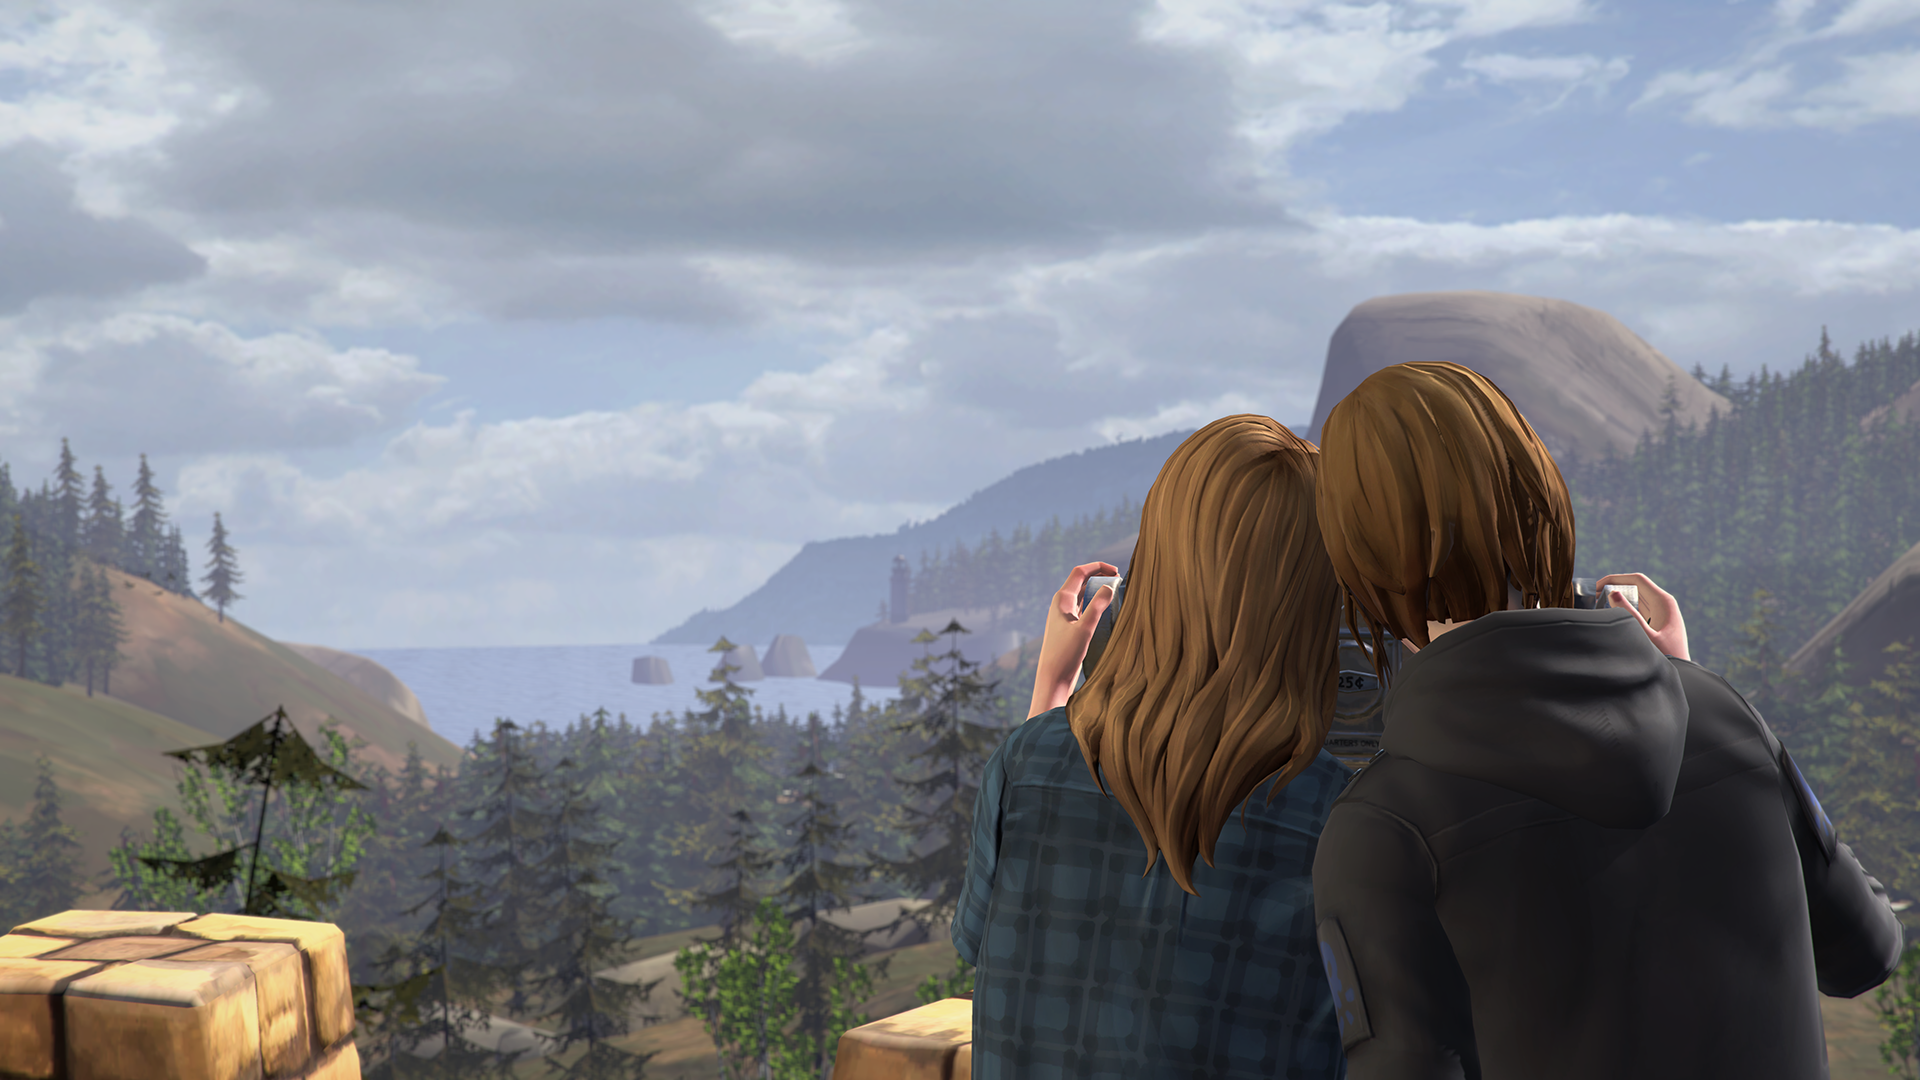 Life is Strange: Before the Storm Gameplay Unveiled During E3 2017